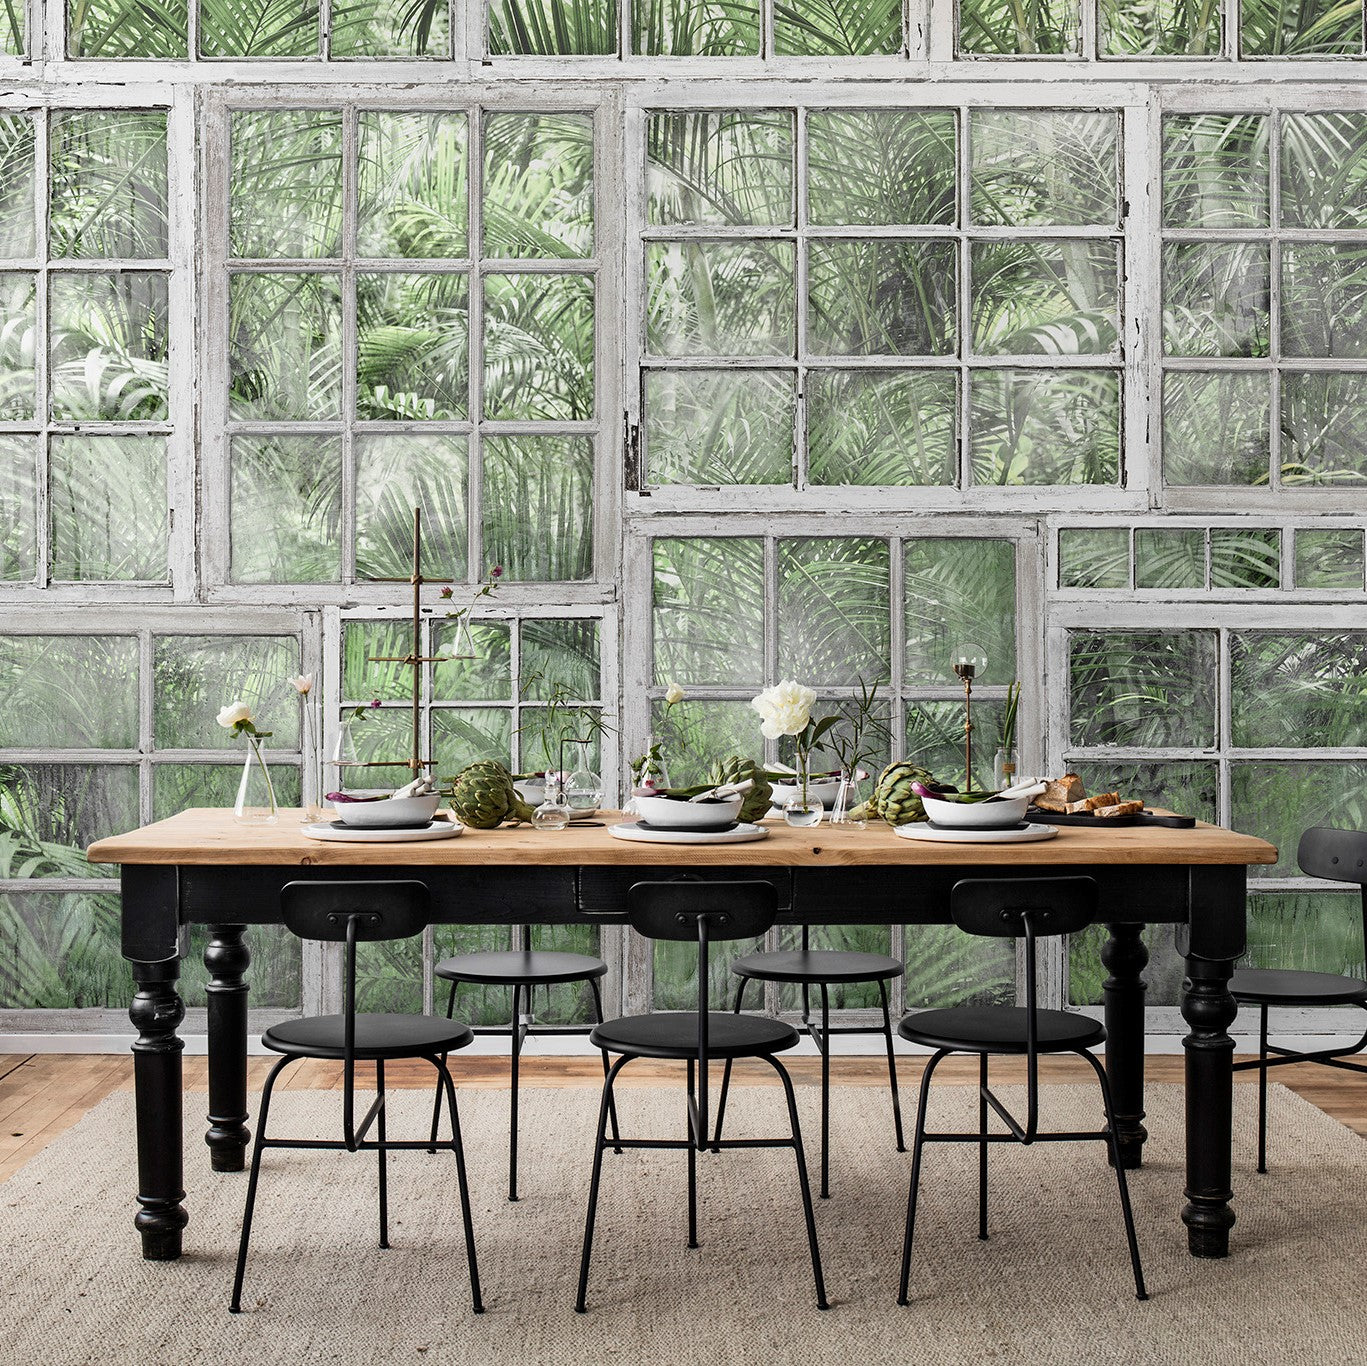 Garden Loft Mural Wallpaper (SqM)